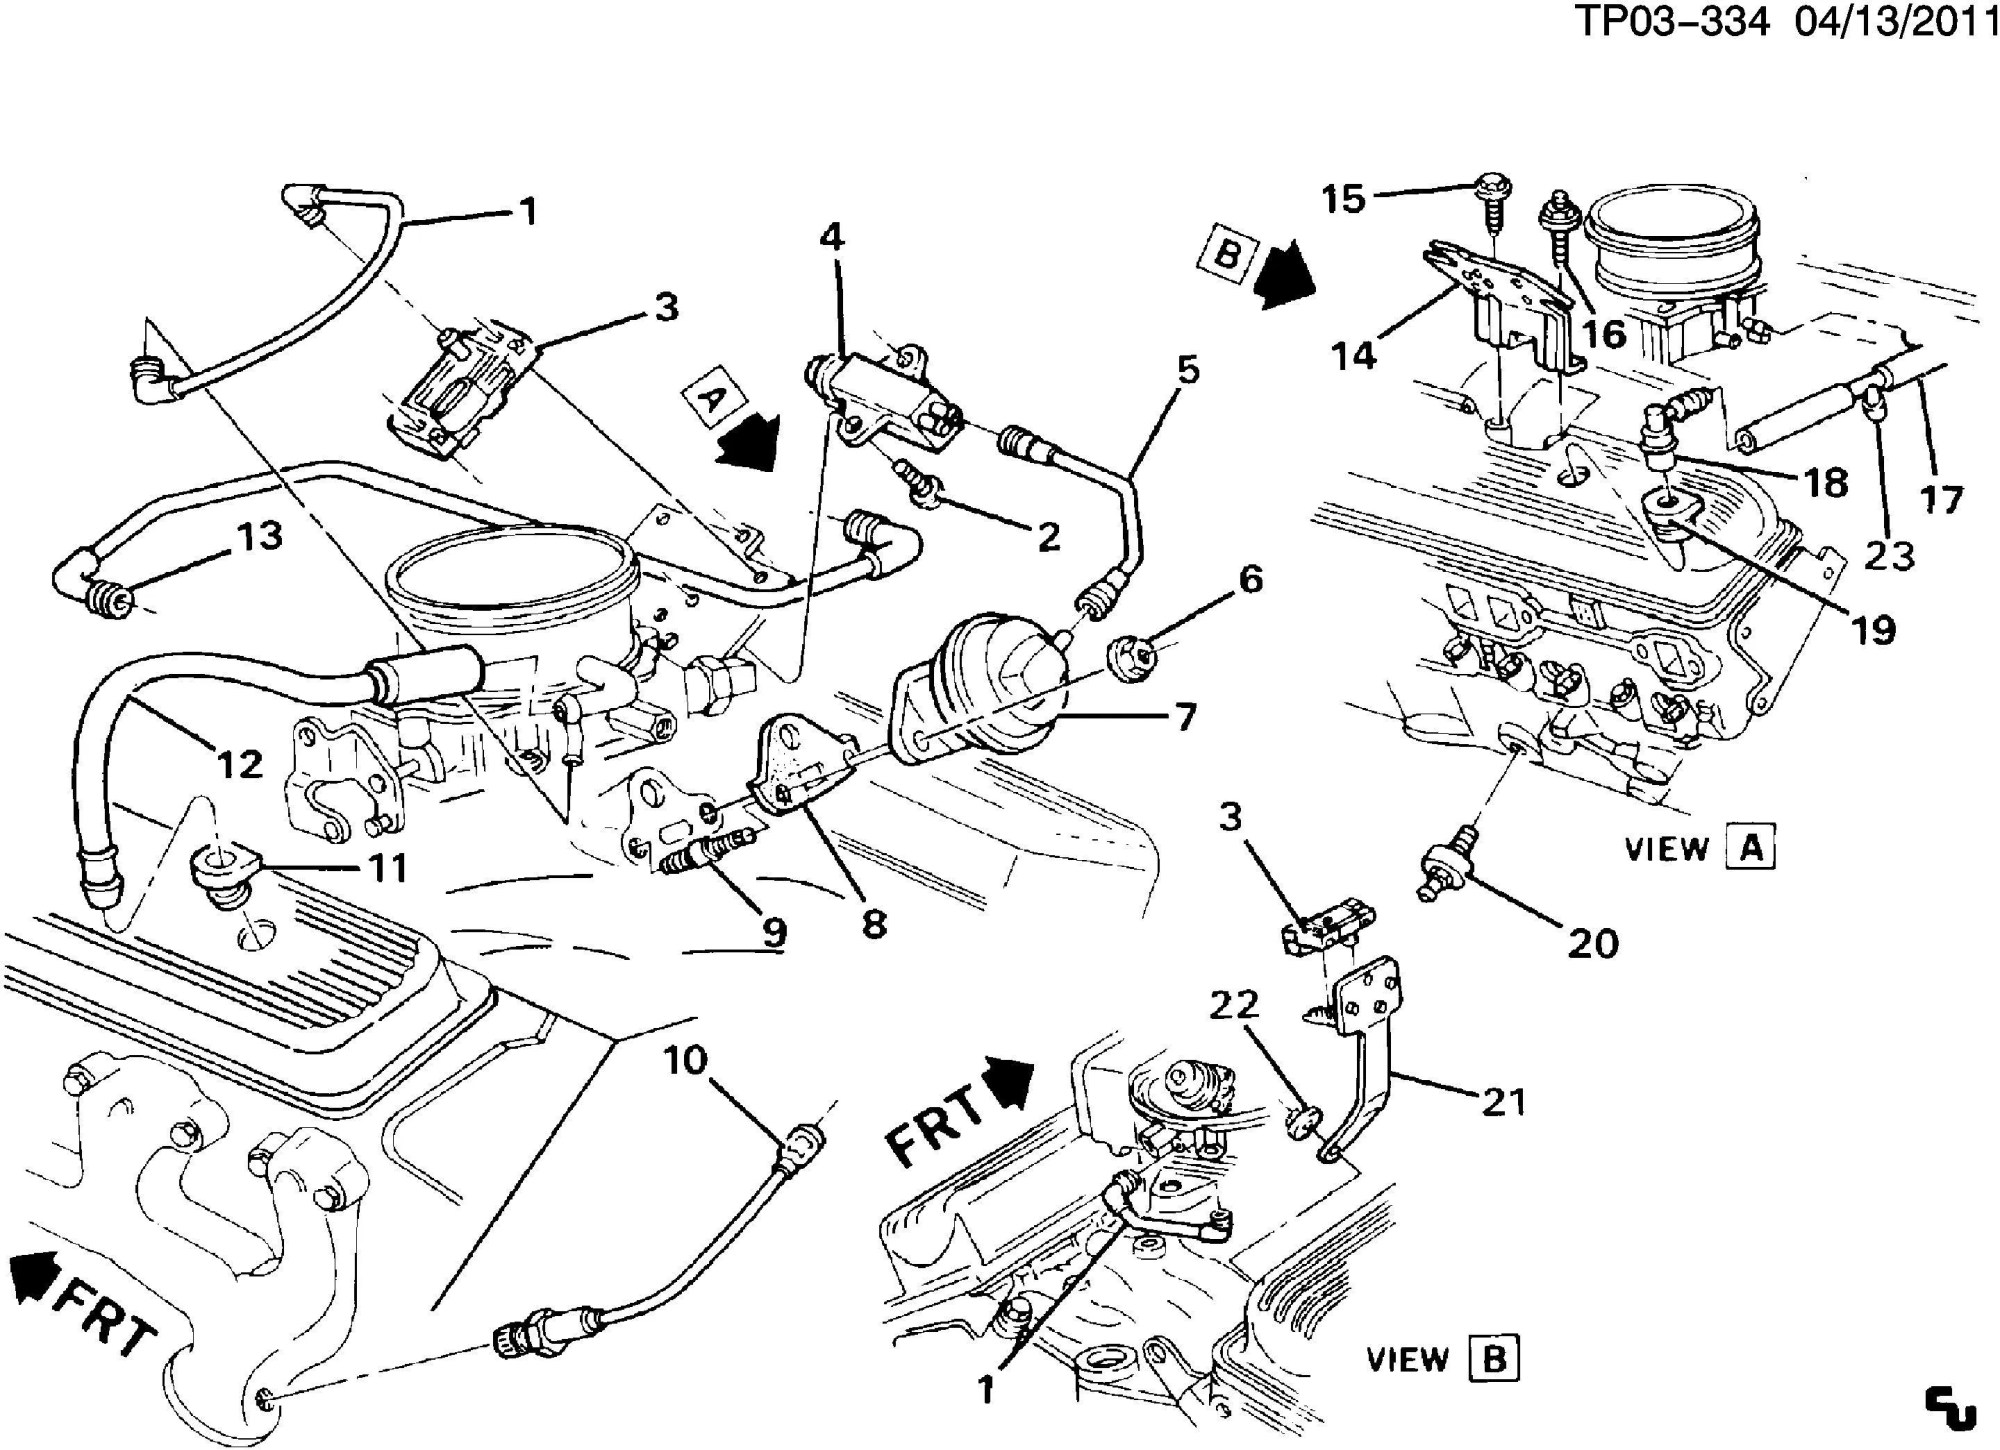 hight resolution of 96 tahoe engine diagram wiring diagram data name 1996 chevy tahoe engine diagram 96 tahoe engine diagram